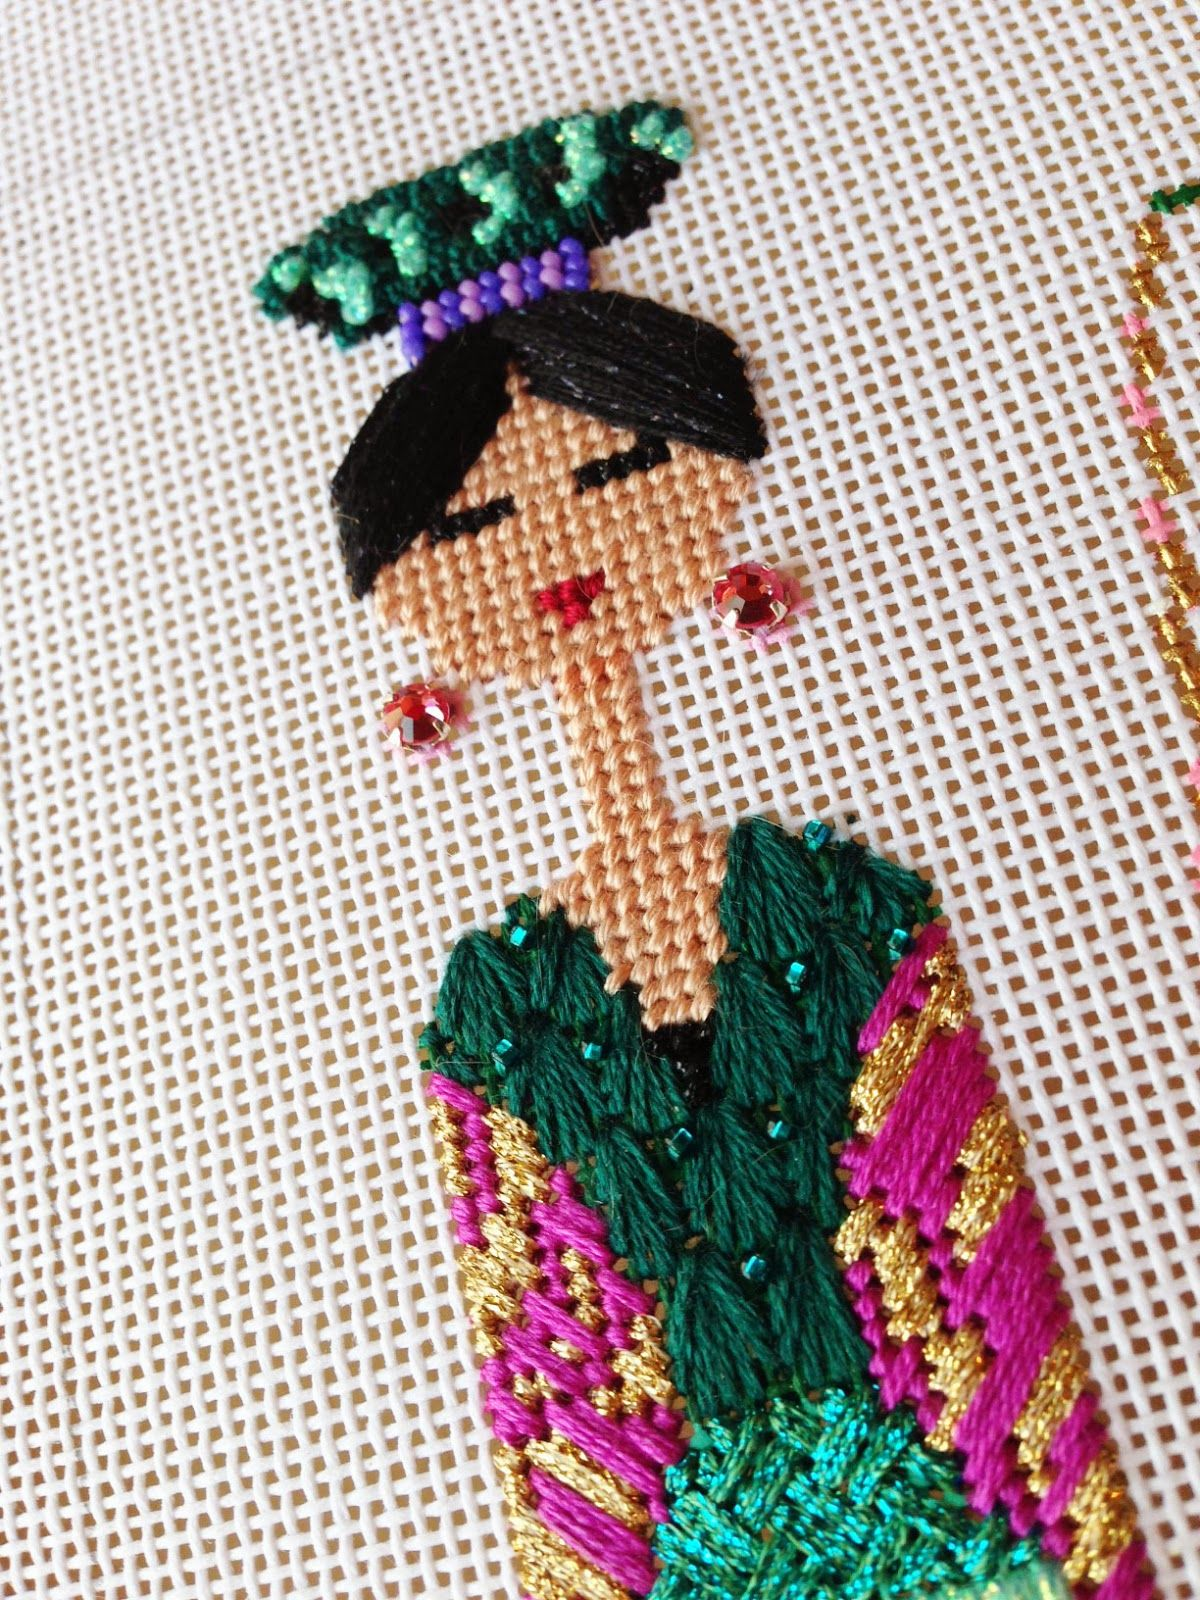 It's not your Grandmother's Needlepoint: The Party Continues